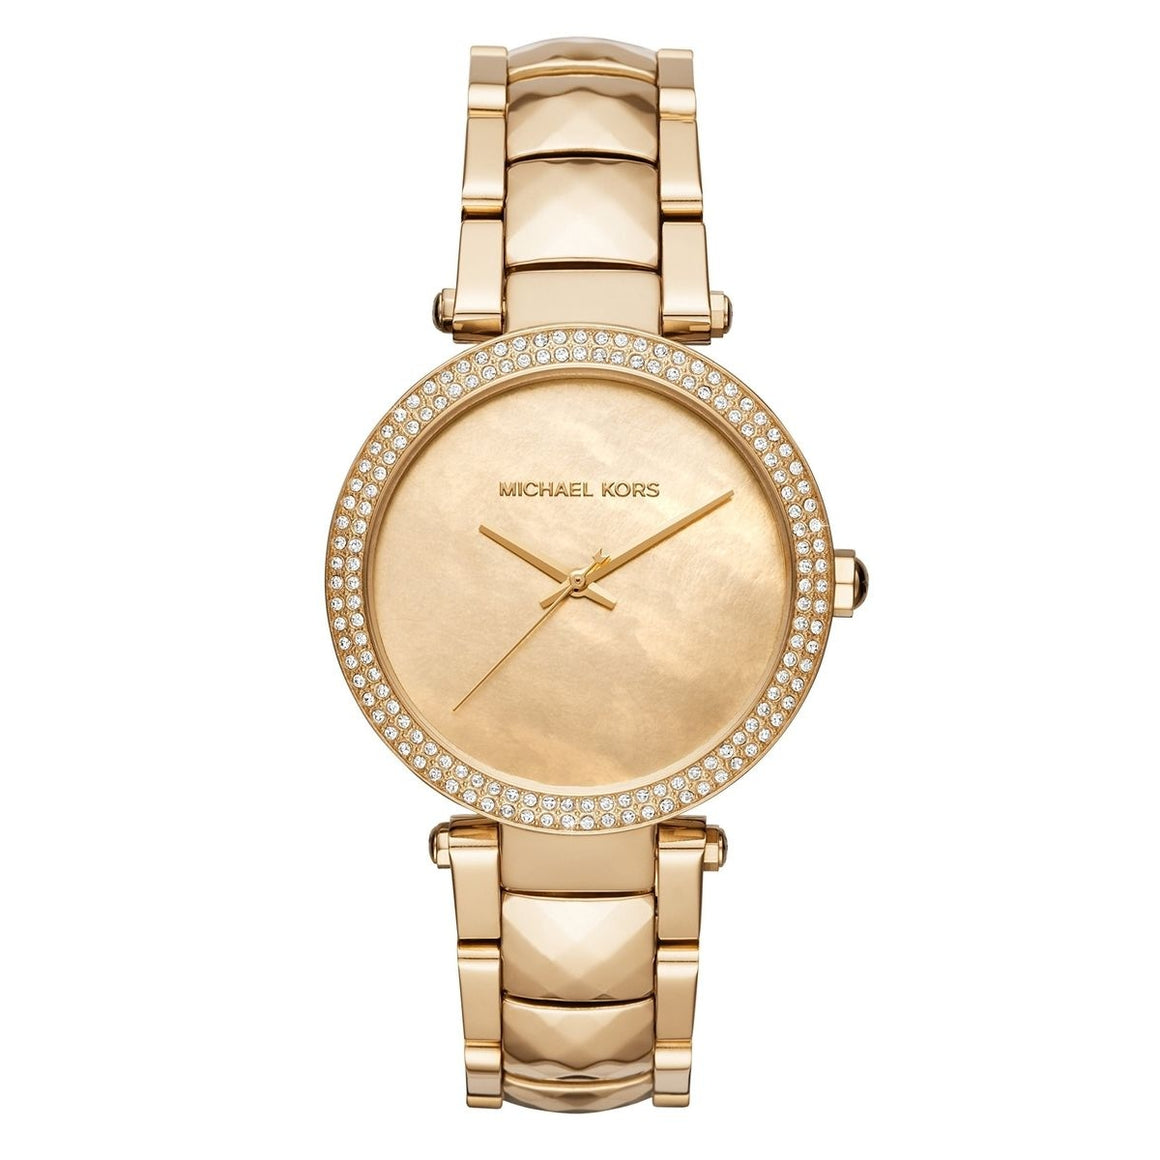 Michael Kors MK6425 Ladies Gold Stainless Steel Watch